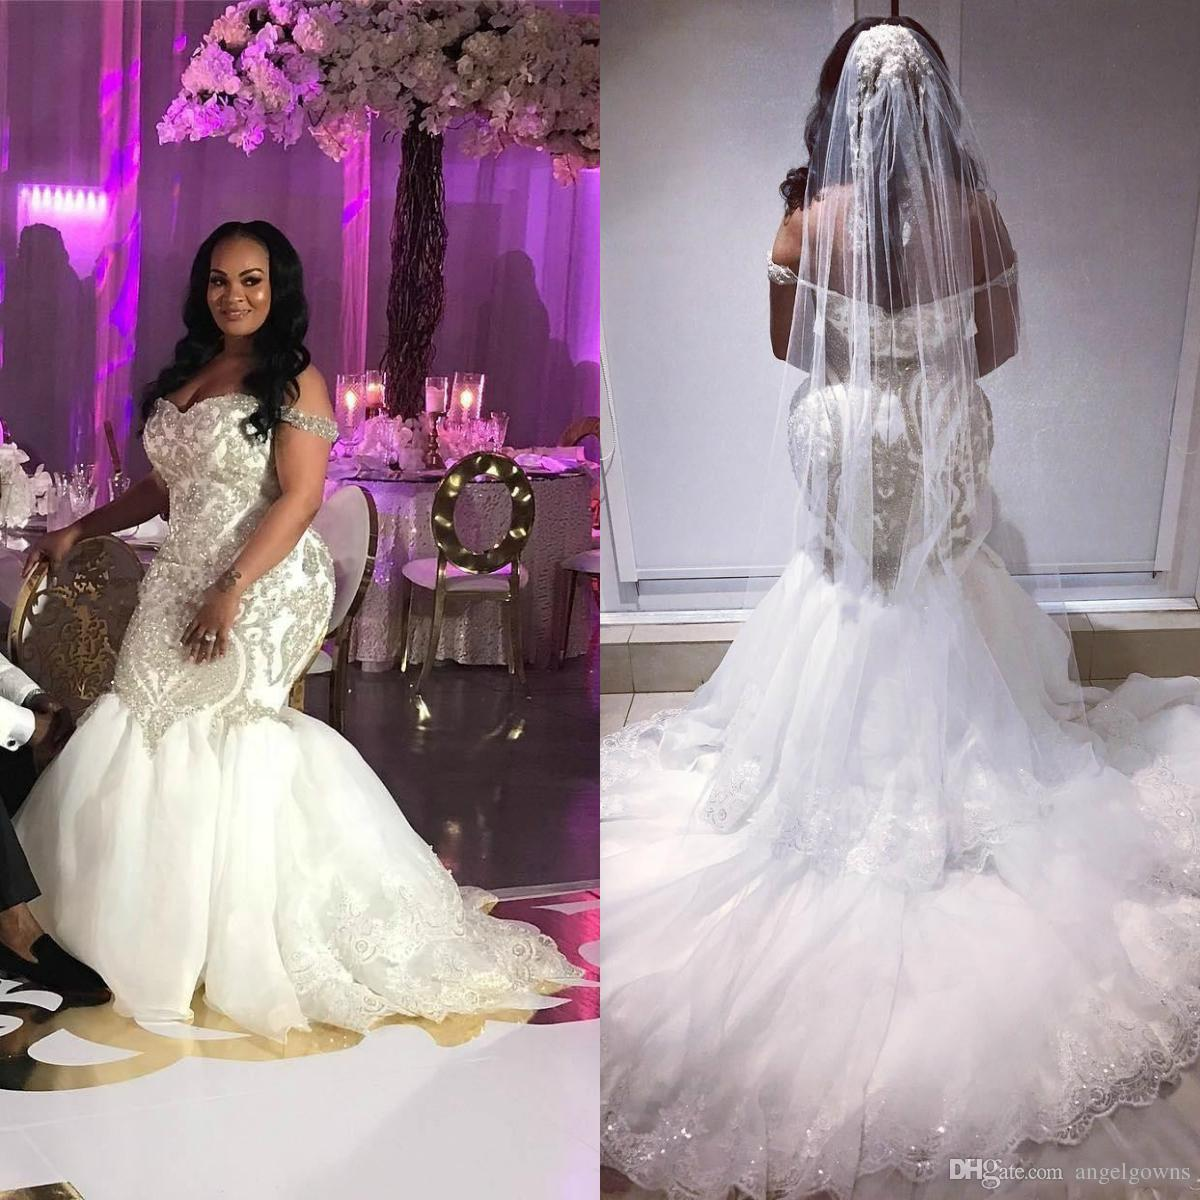 Luxurious Mermaid Wedding Dresses Beaded Sequins New 2019 Sparkly Off Shoulder Bridal Gowns Sexy V Neck Church Bride Dress Plus Size